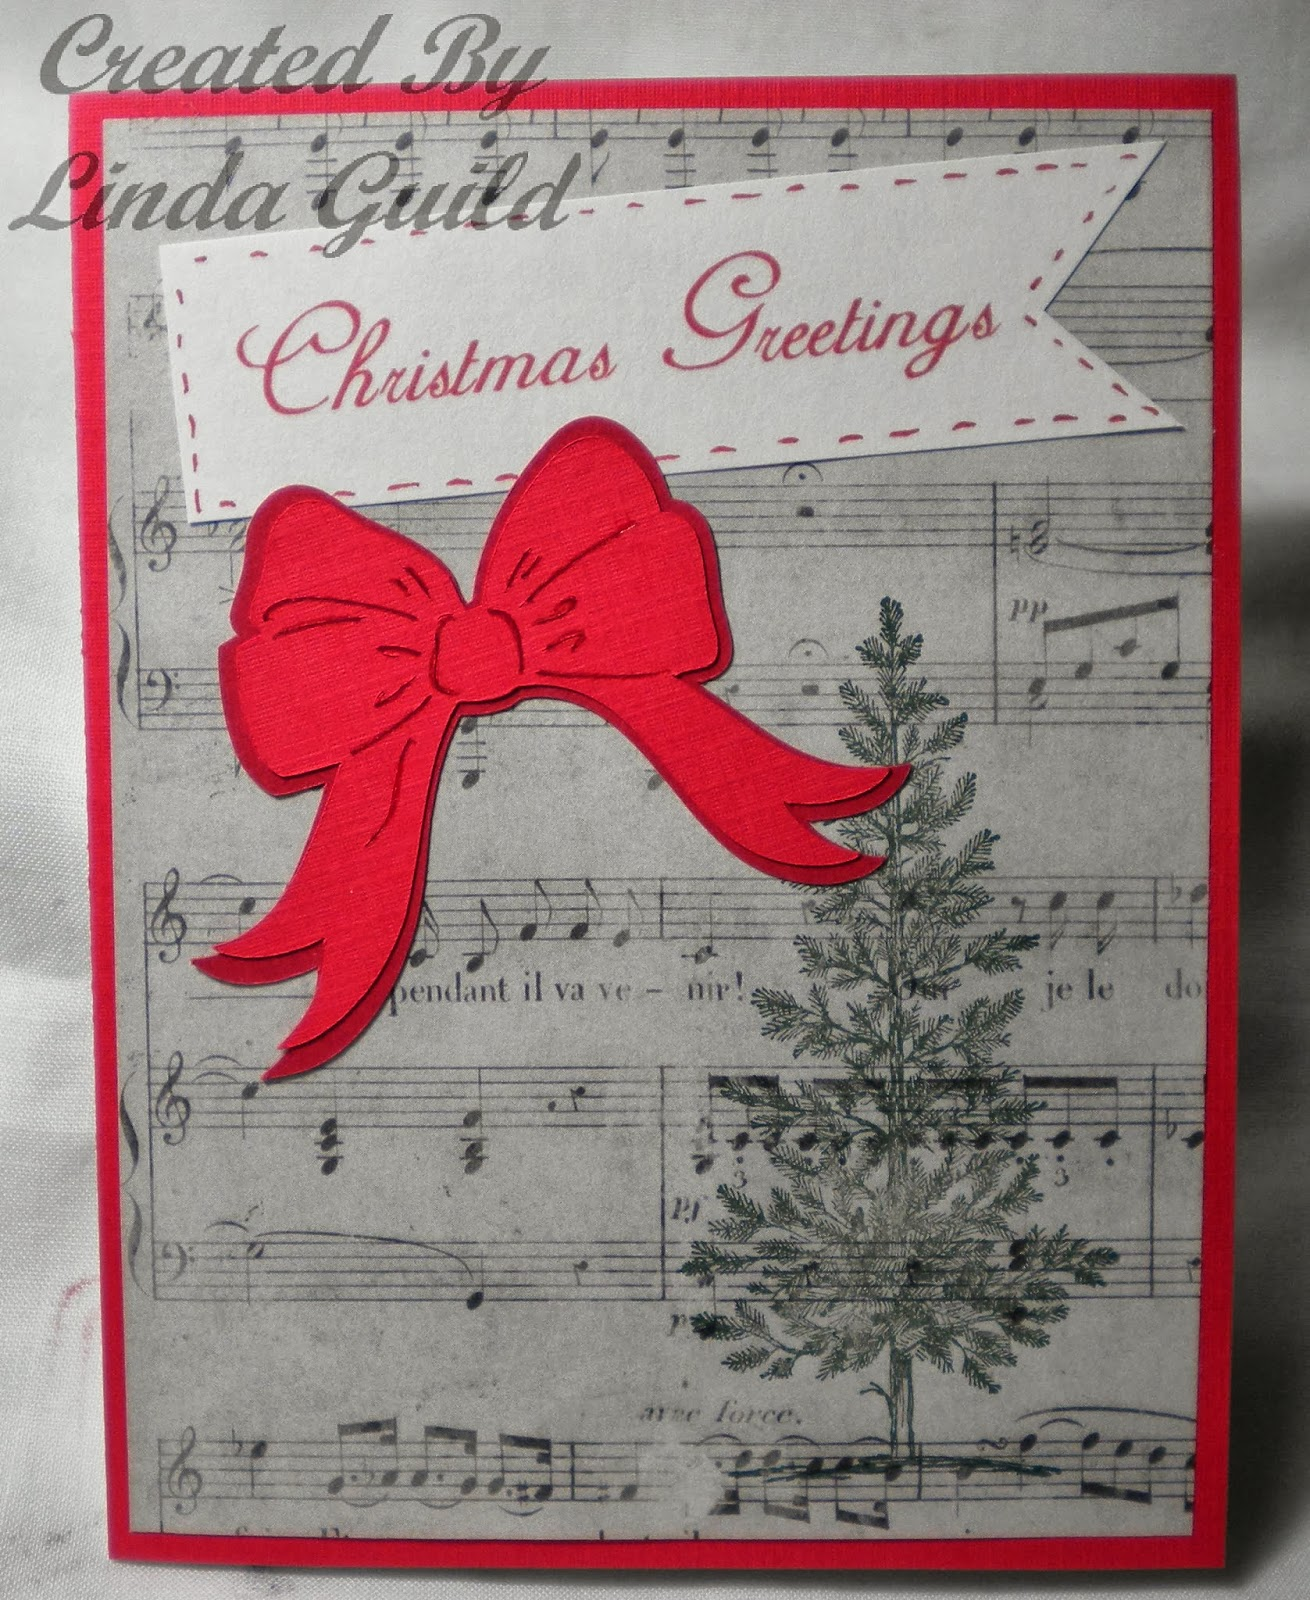 Nothin\' Fancy: Music Paper Christmas Card